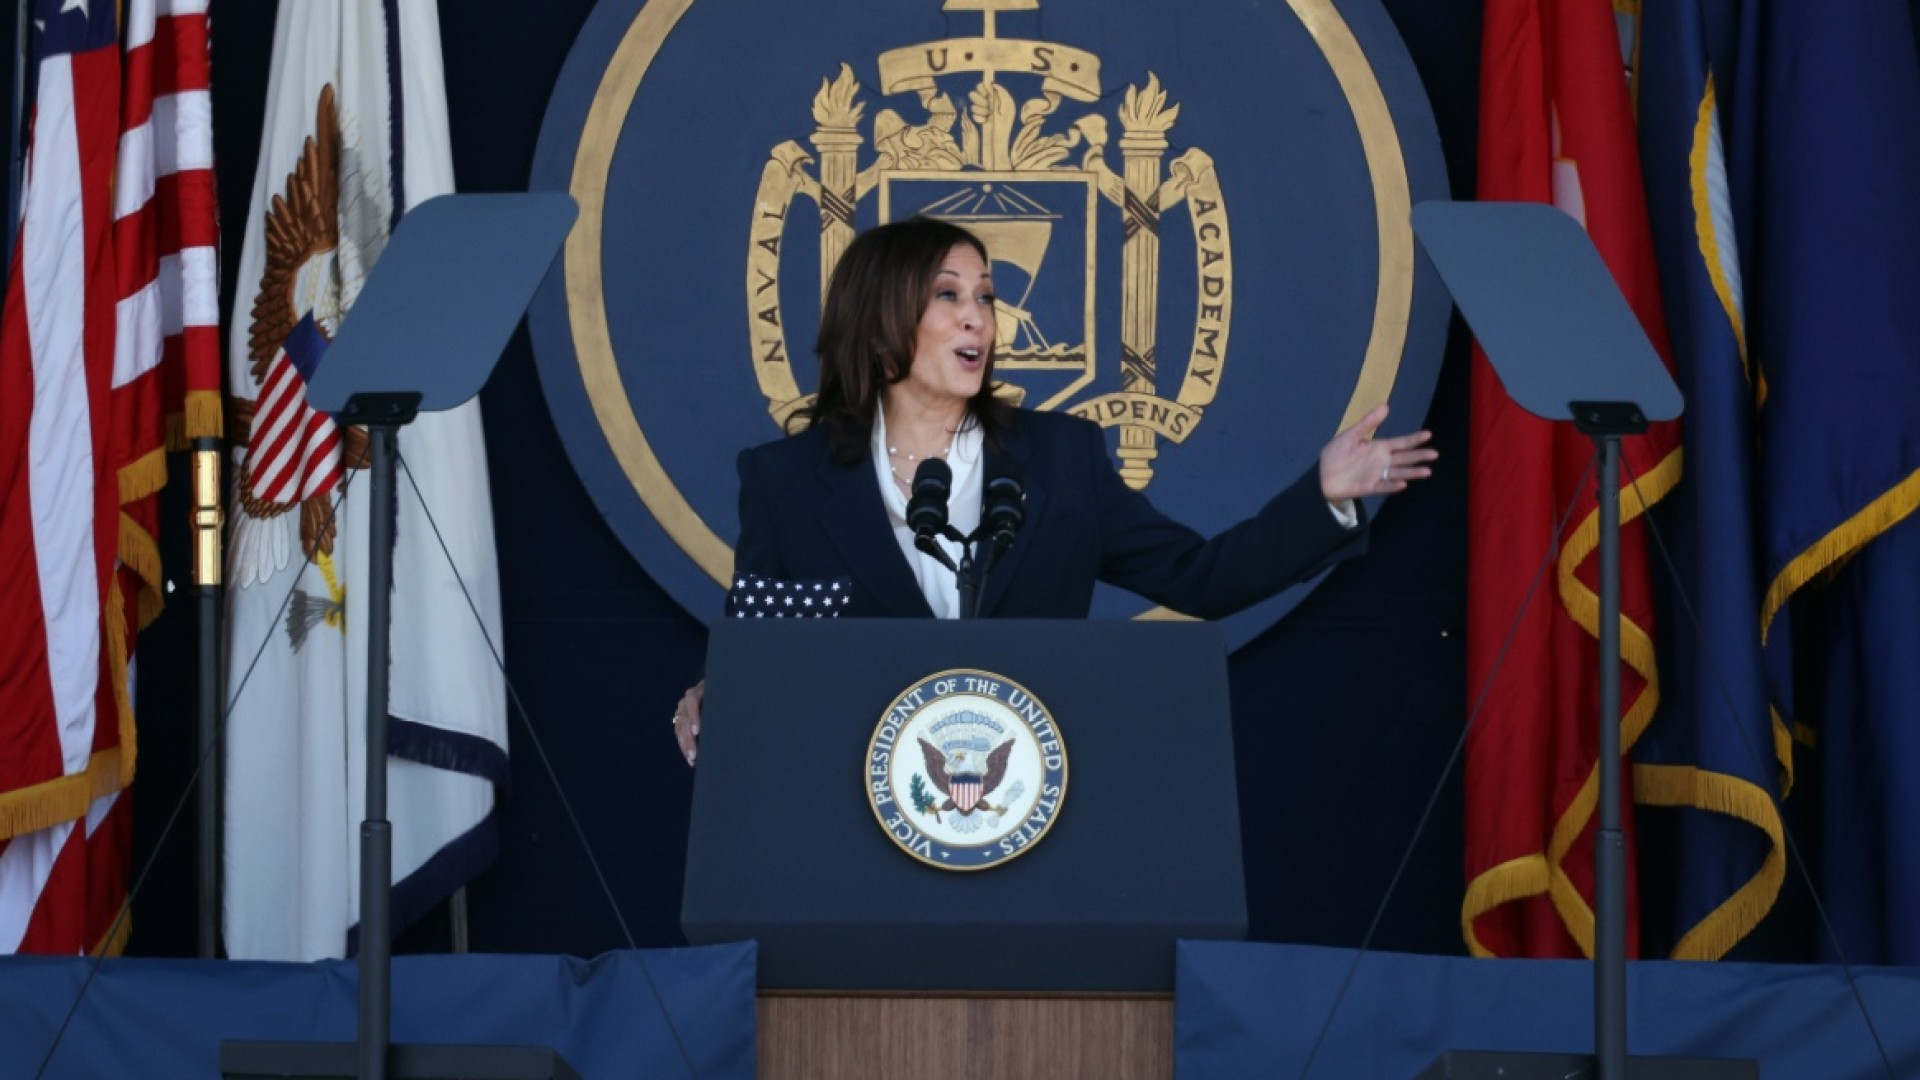 VP Kamala Harris becomes Naval Academy's first female commencement speaker, tells 1000 graduates 'our world is fragile', the Colonial pipeline hack was 'a warning shot' and climate change is a 'national security threat'